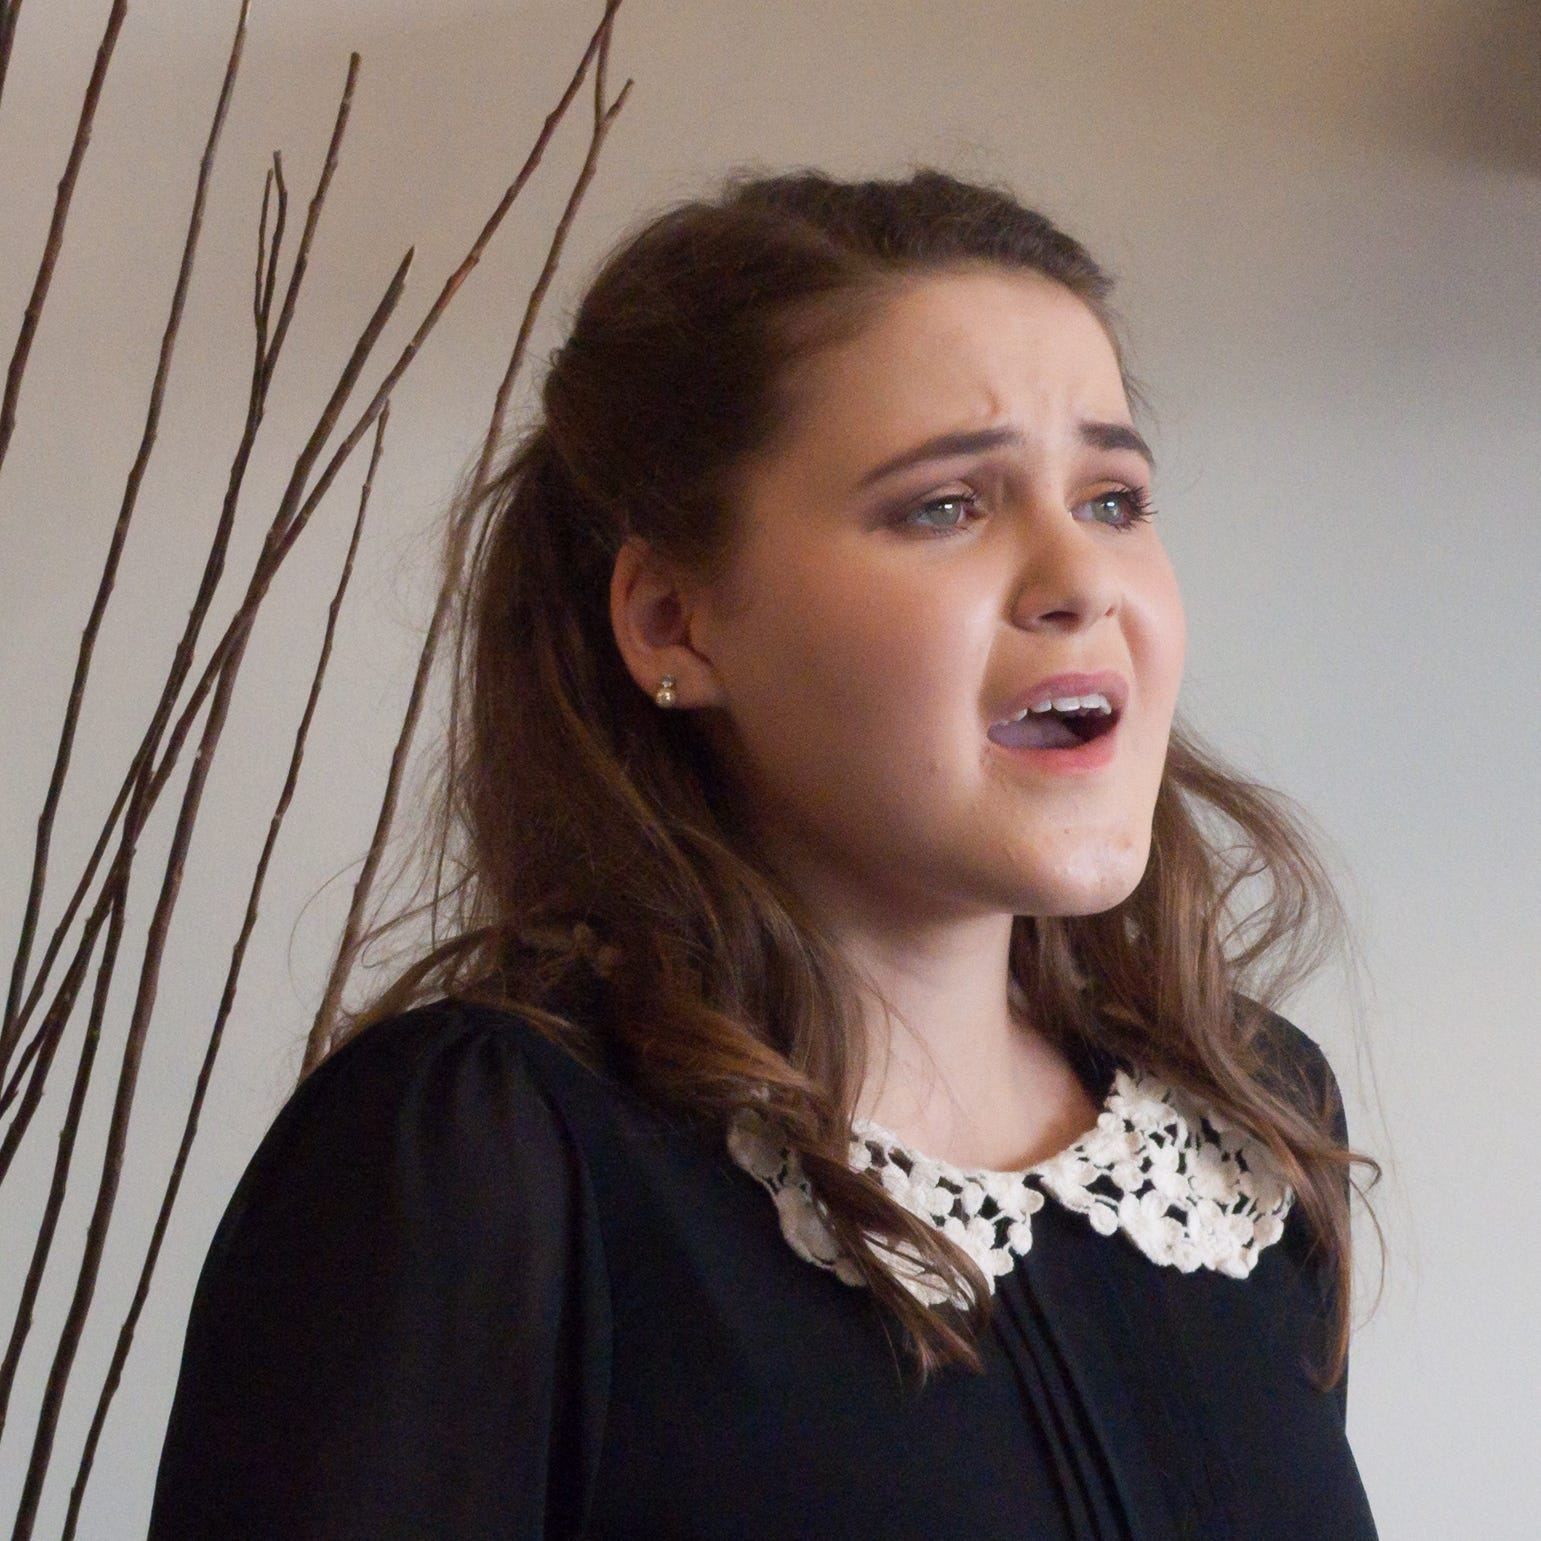 Teen prodigy from Hartland started writing tunes for professional musical at 11